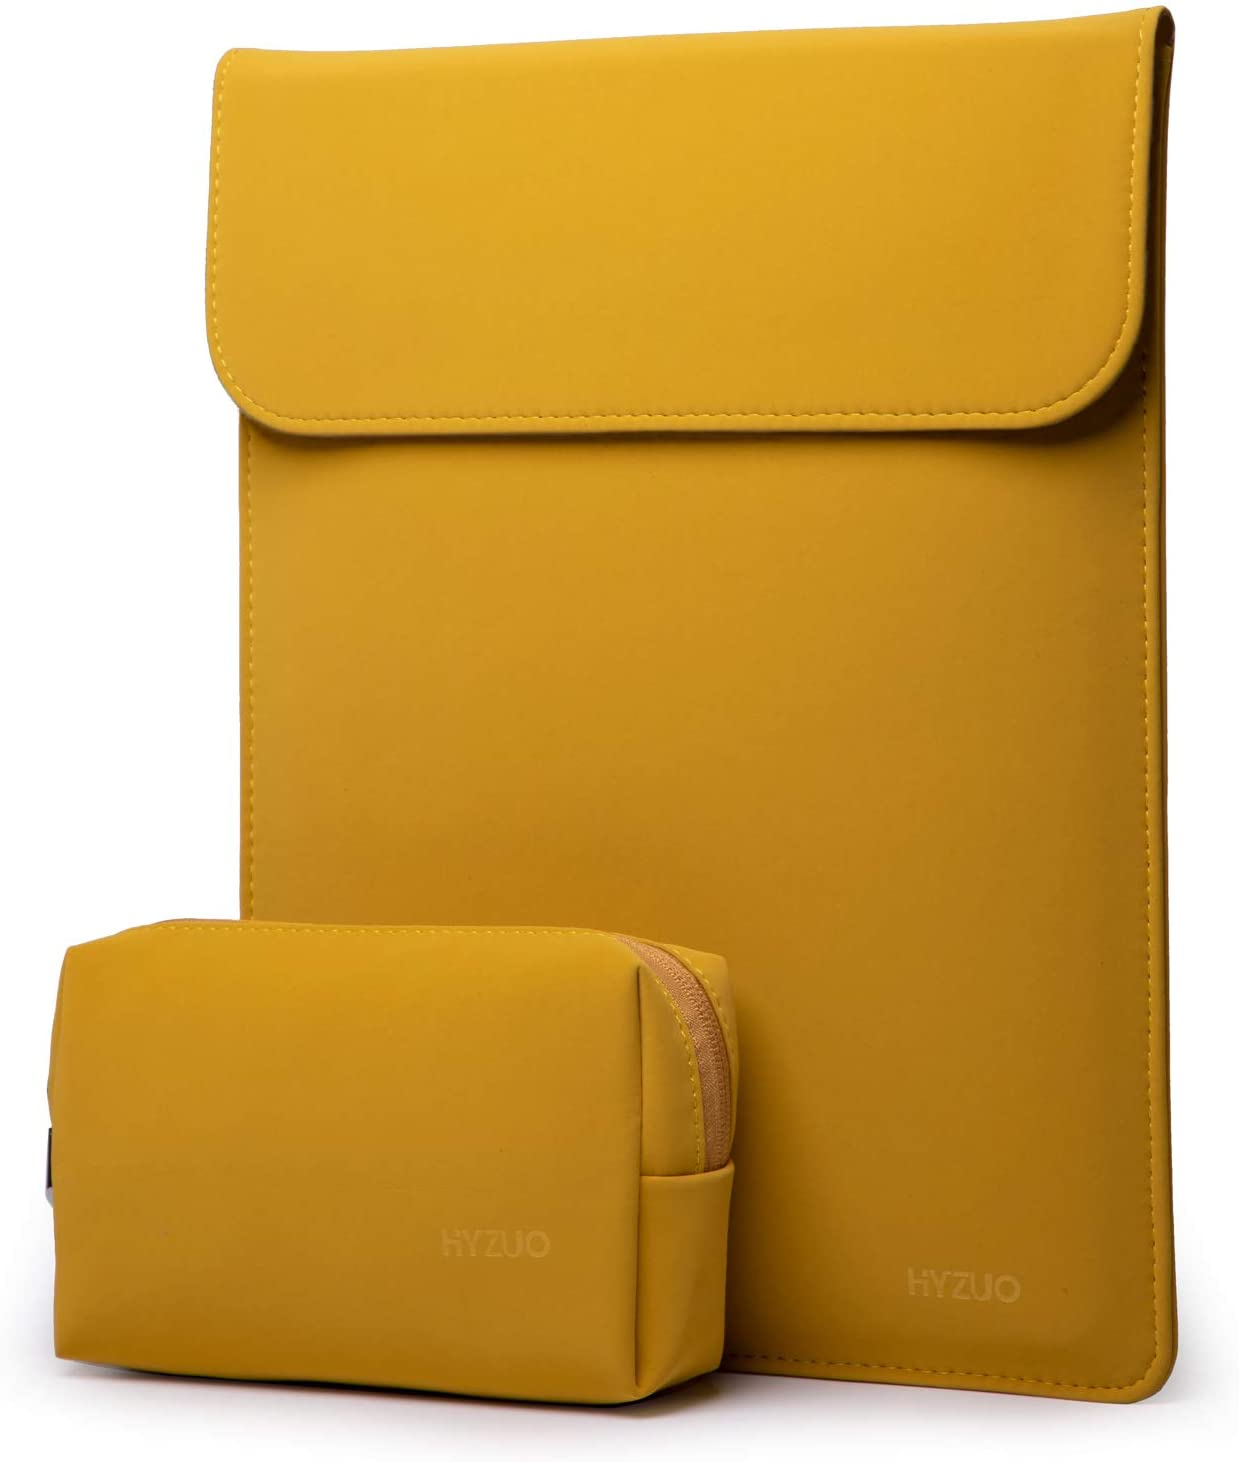 HYZUO 15-16 Inch Laptop Sleeve Case Compatible with 2019 MacBook Pro 16 A2141/ Surface Laptop 3 15 Inch/Dell XPS 15/2012-2015 Old MacBook Pro Retina 15 A1398, Olive Yellow